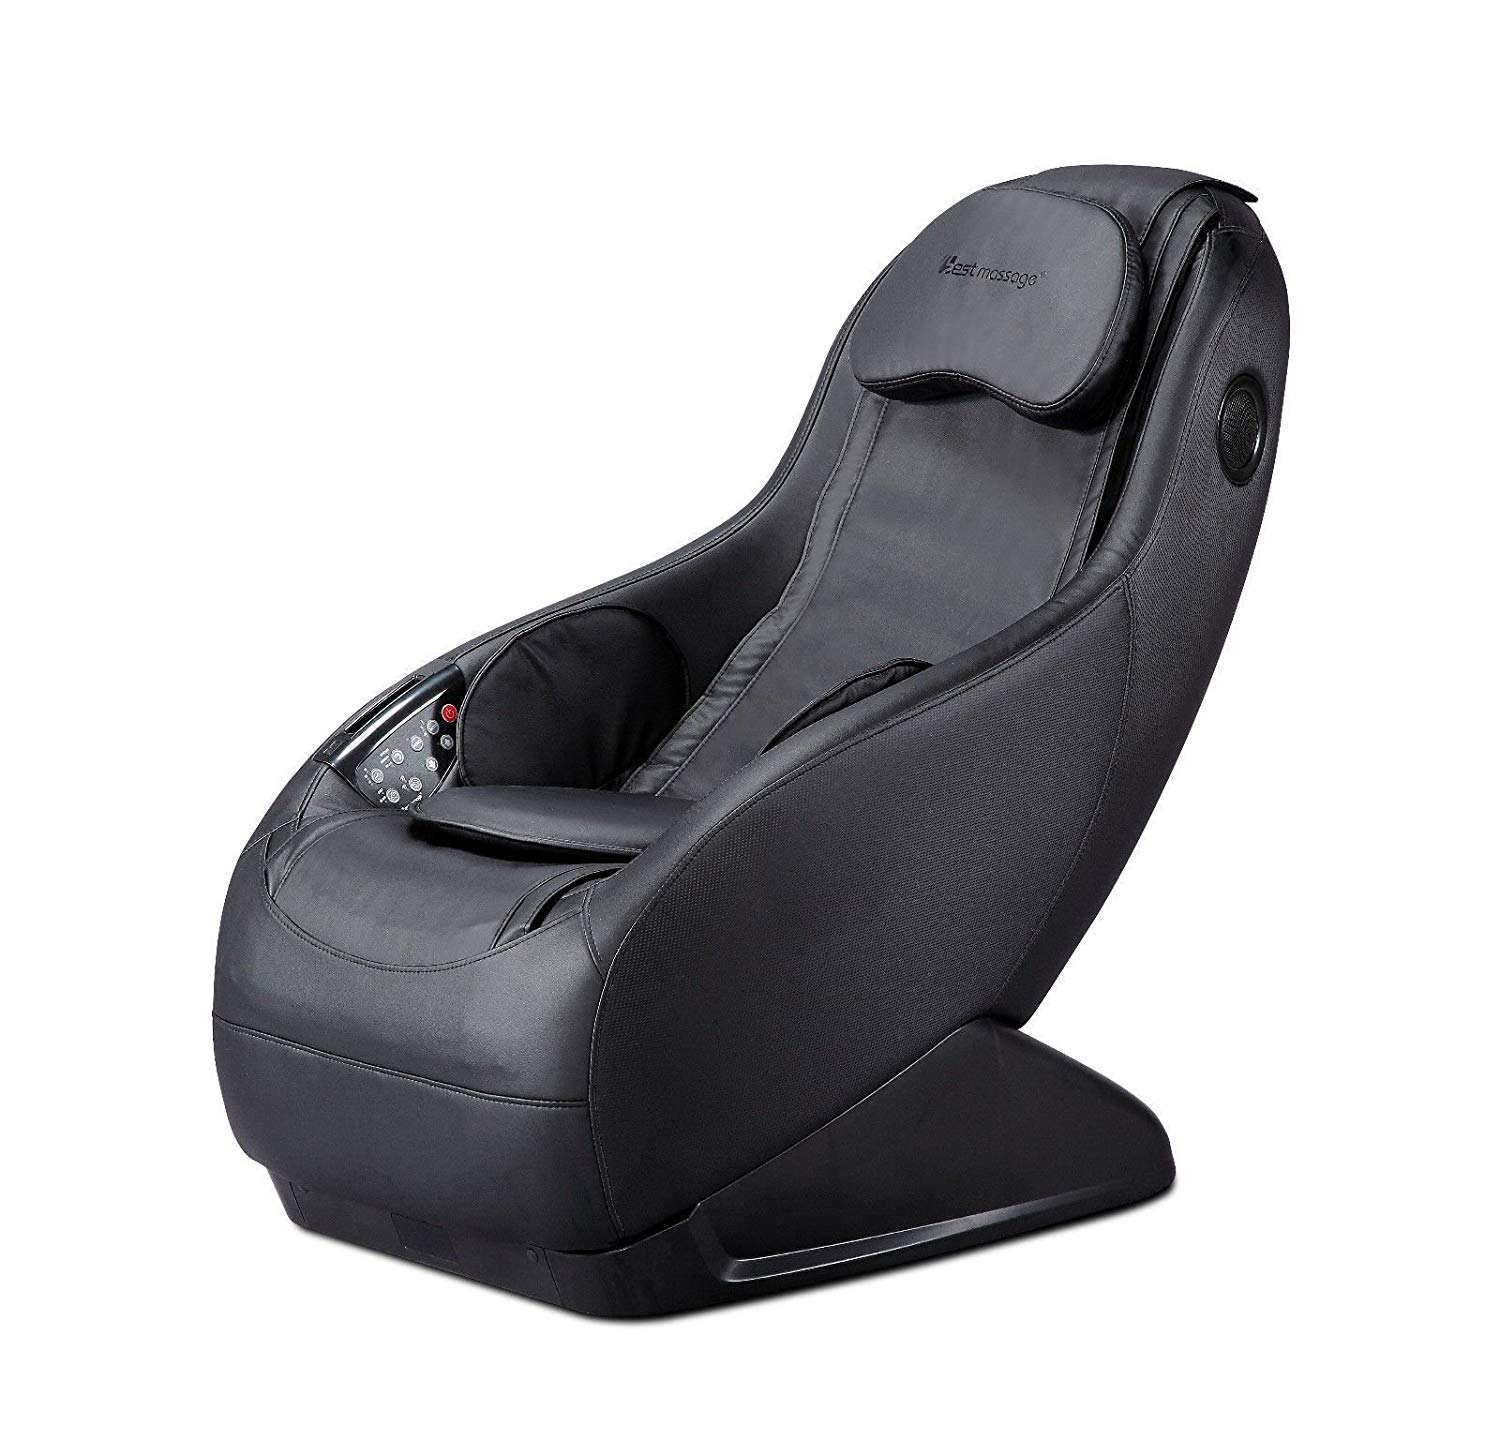 Most Comfortable Chair For Gaming Top 10 Most Expensive Gaming Chairs In The World In 2019